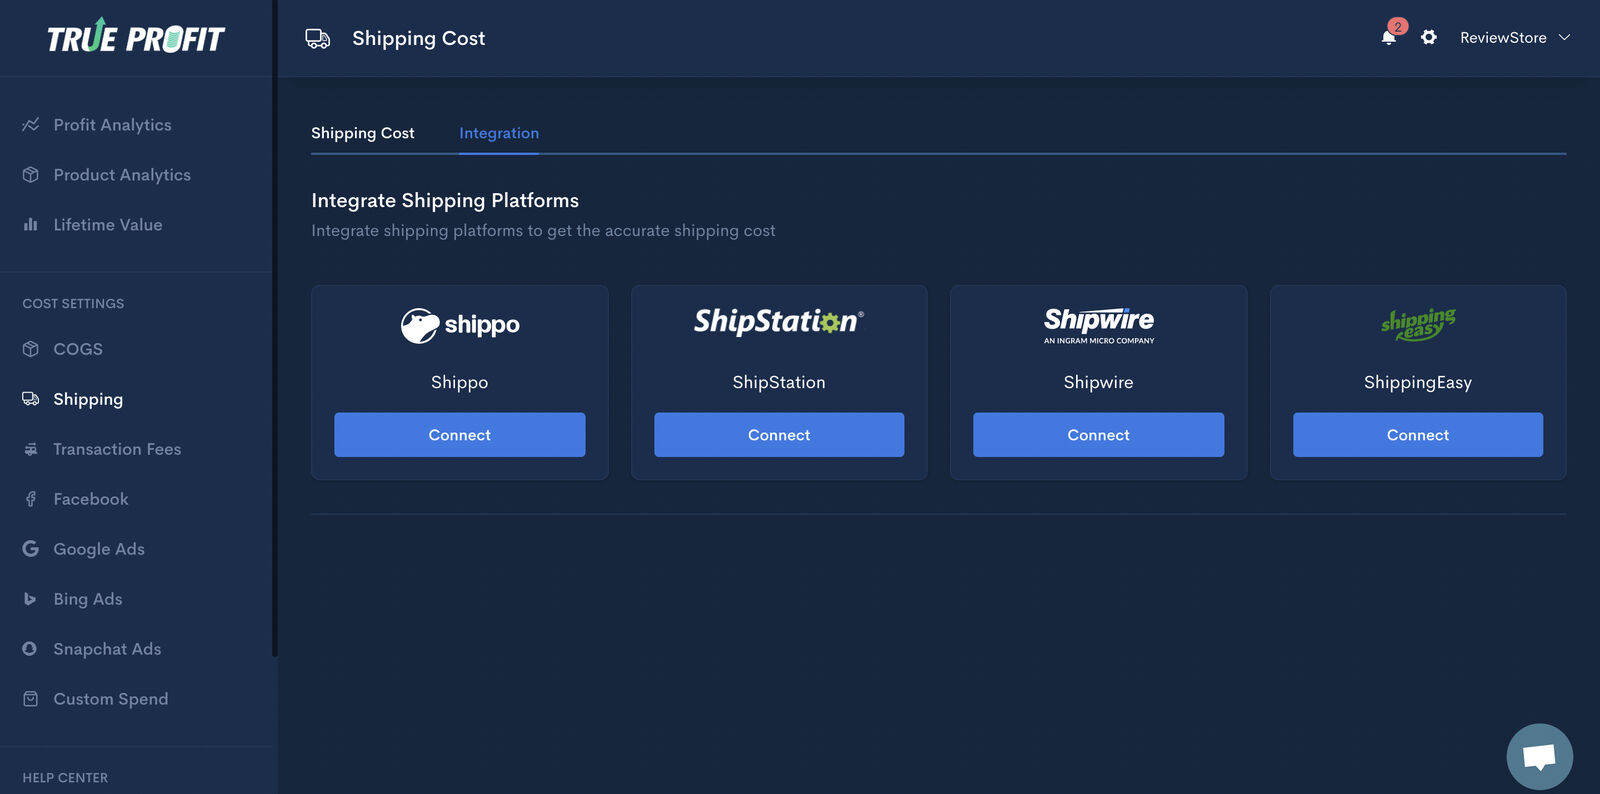 The four most prevalent shipping softwares available on TrueProfit